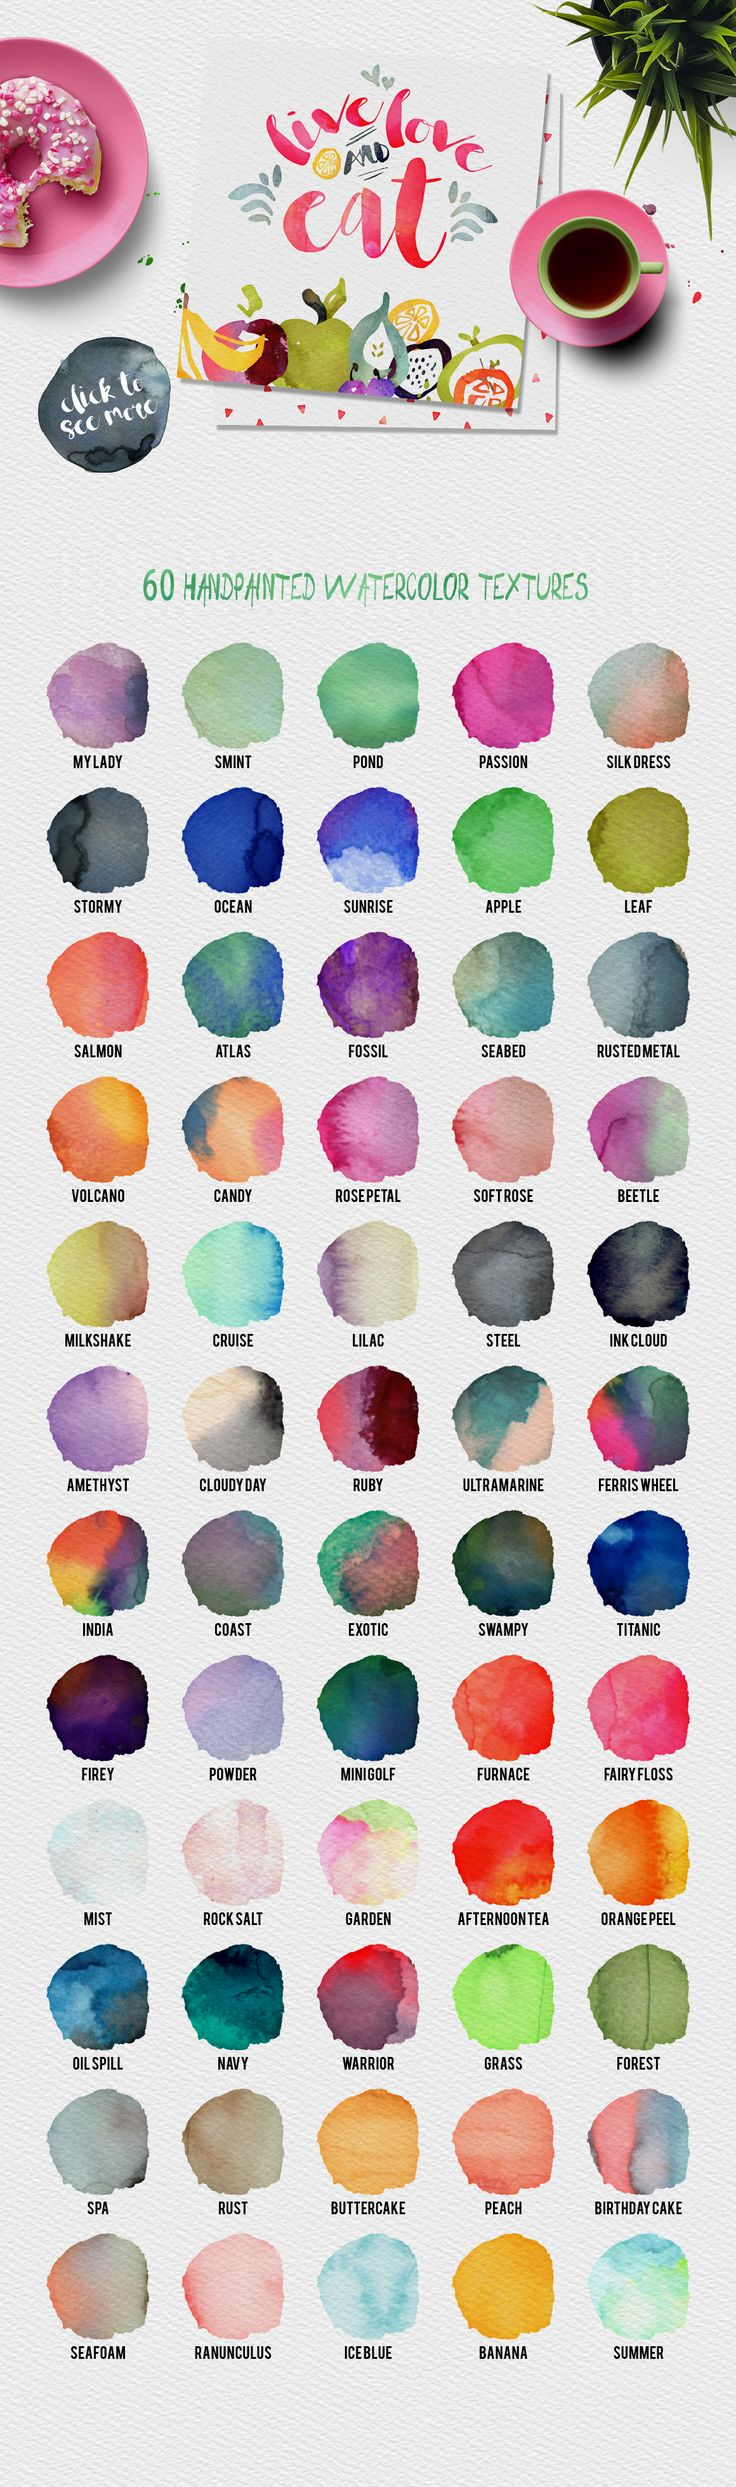 Wonderful Watercolor Design Pack